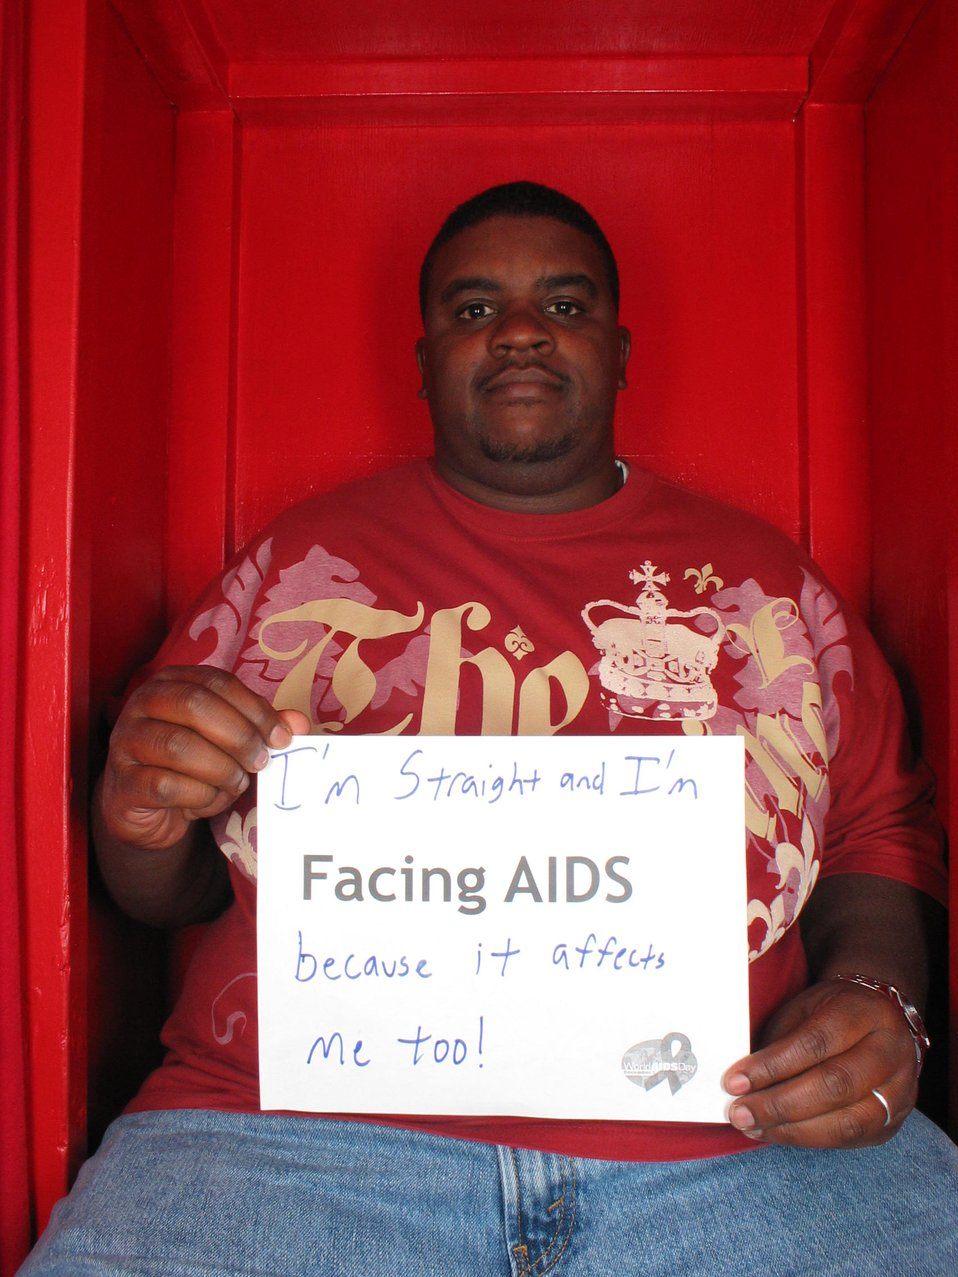 I am straight and I'm Facing AIDS because it affects me too!